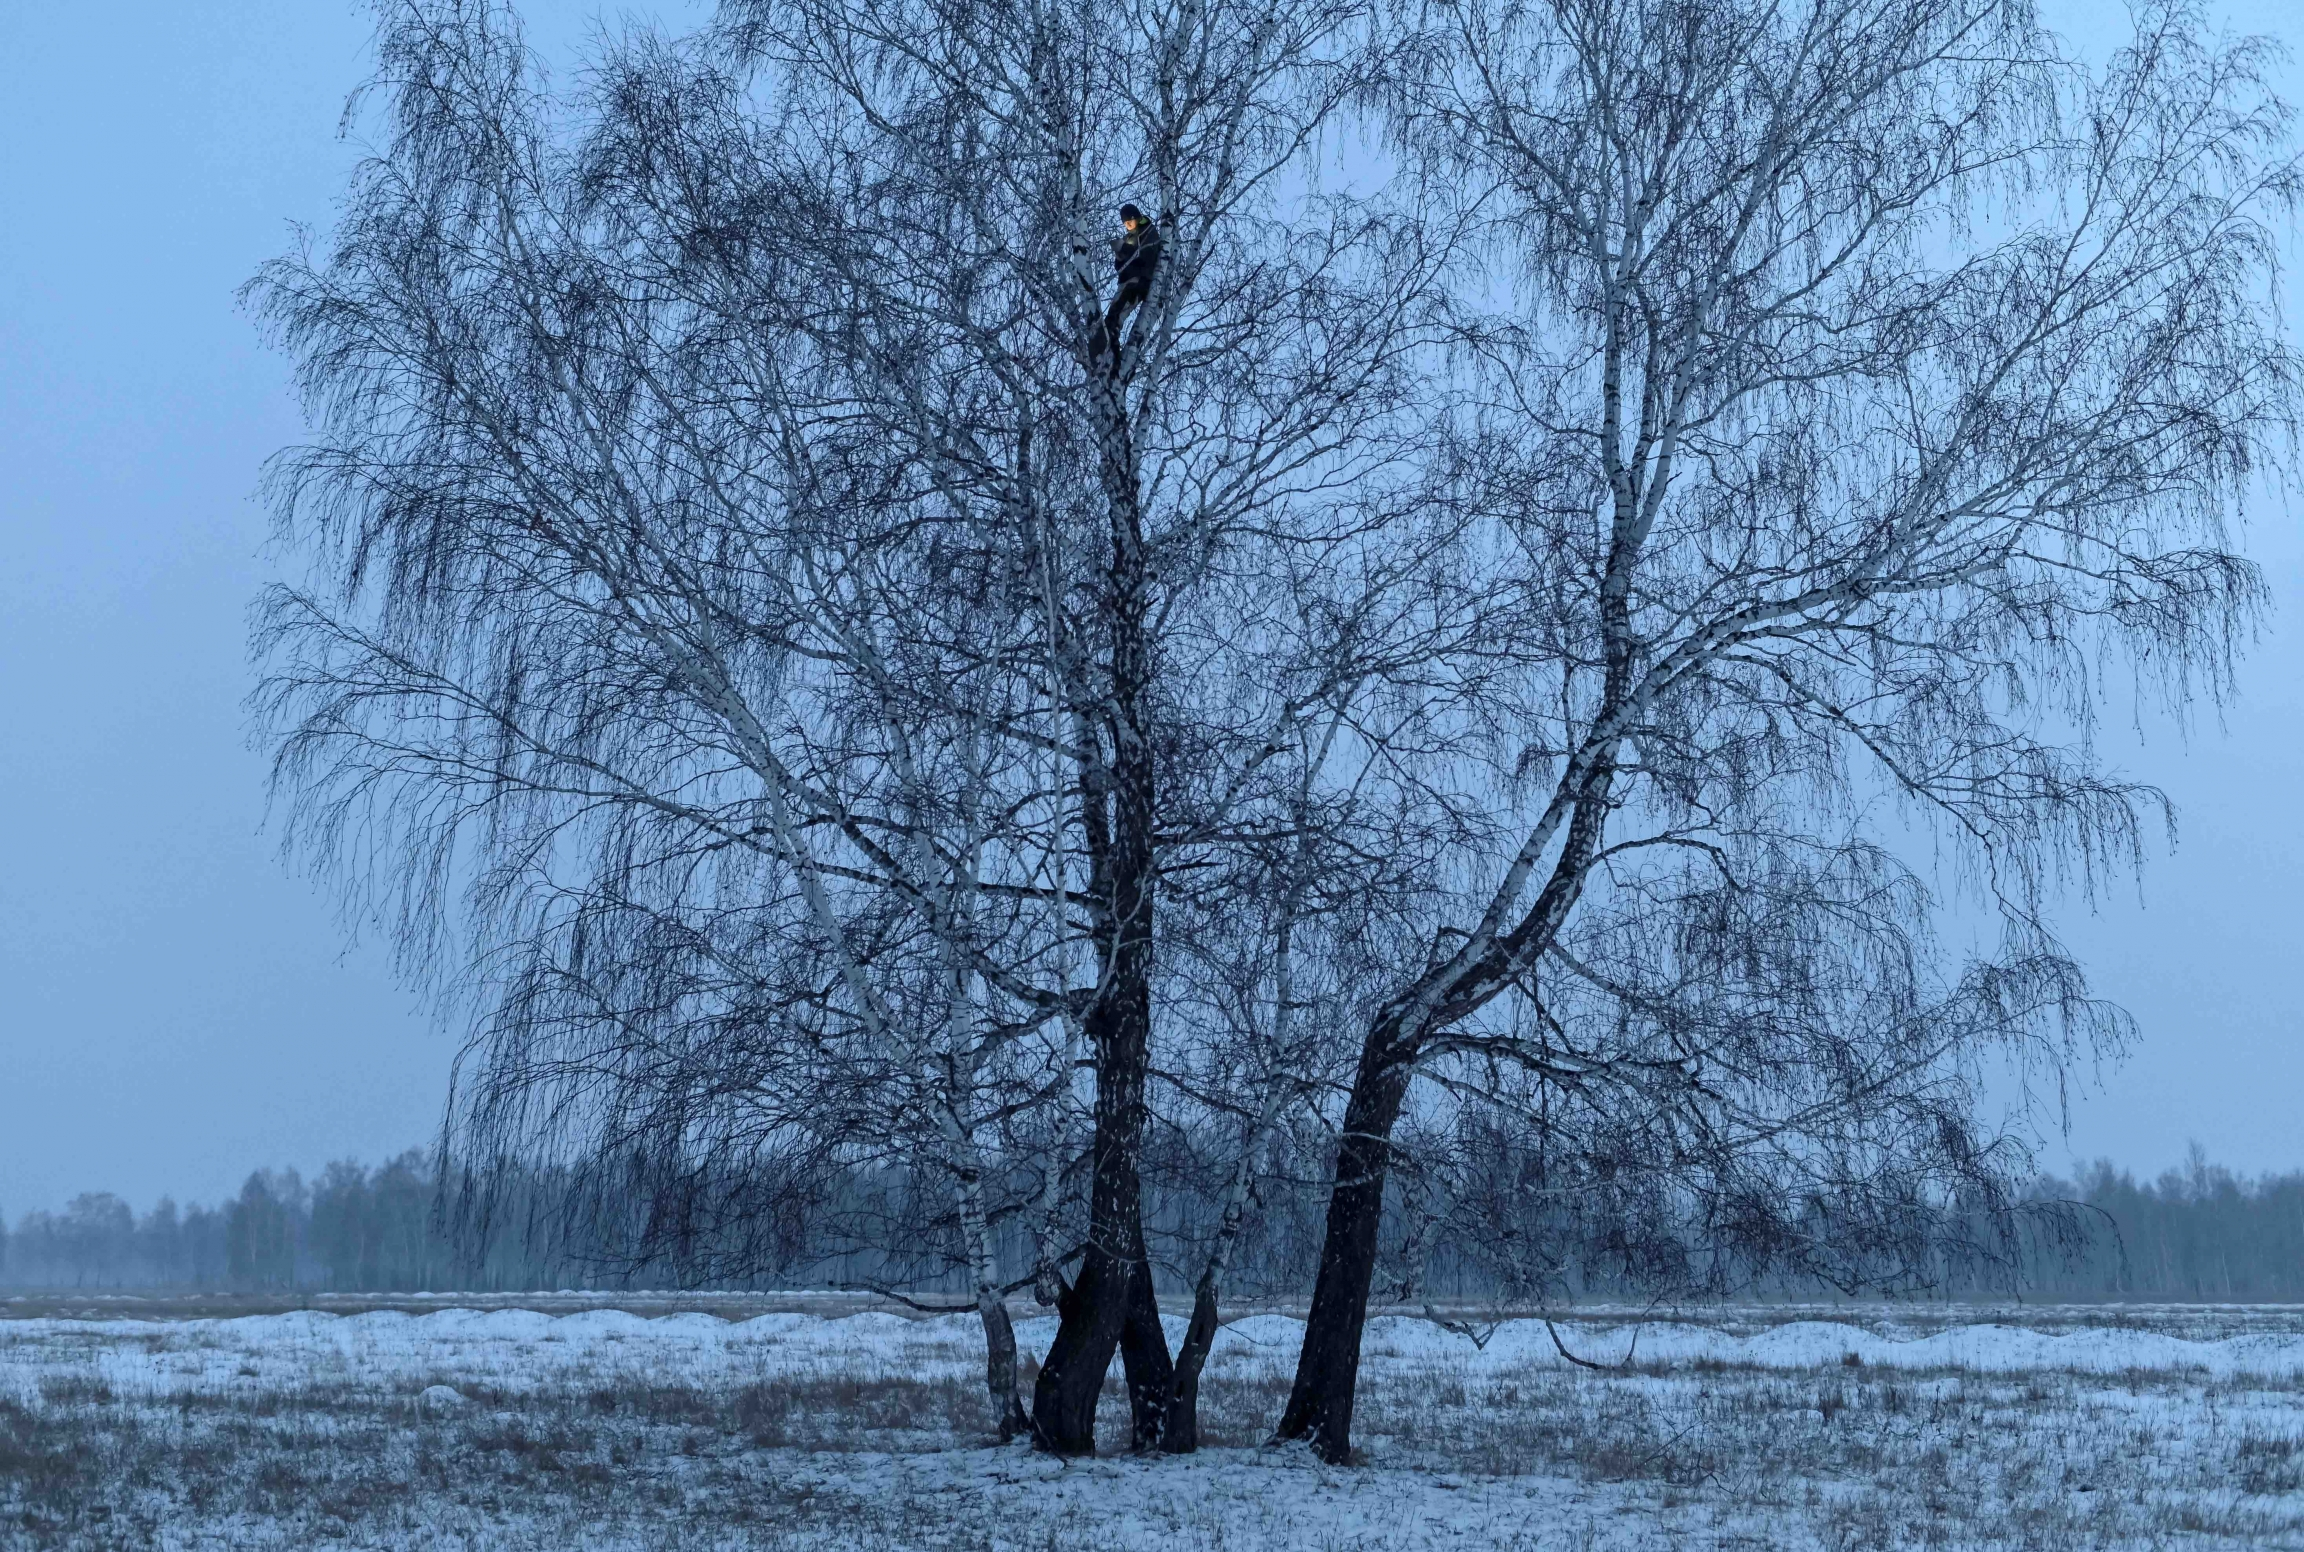 A man is photographed at the top of a tree in a field covered with snow.